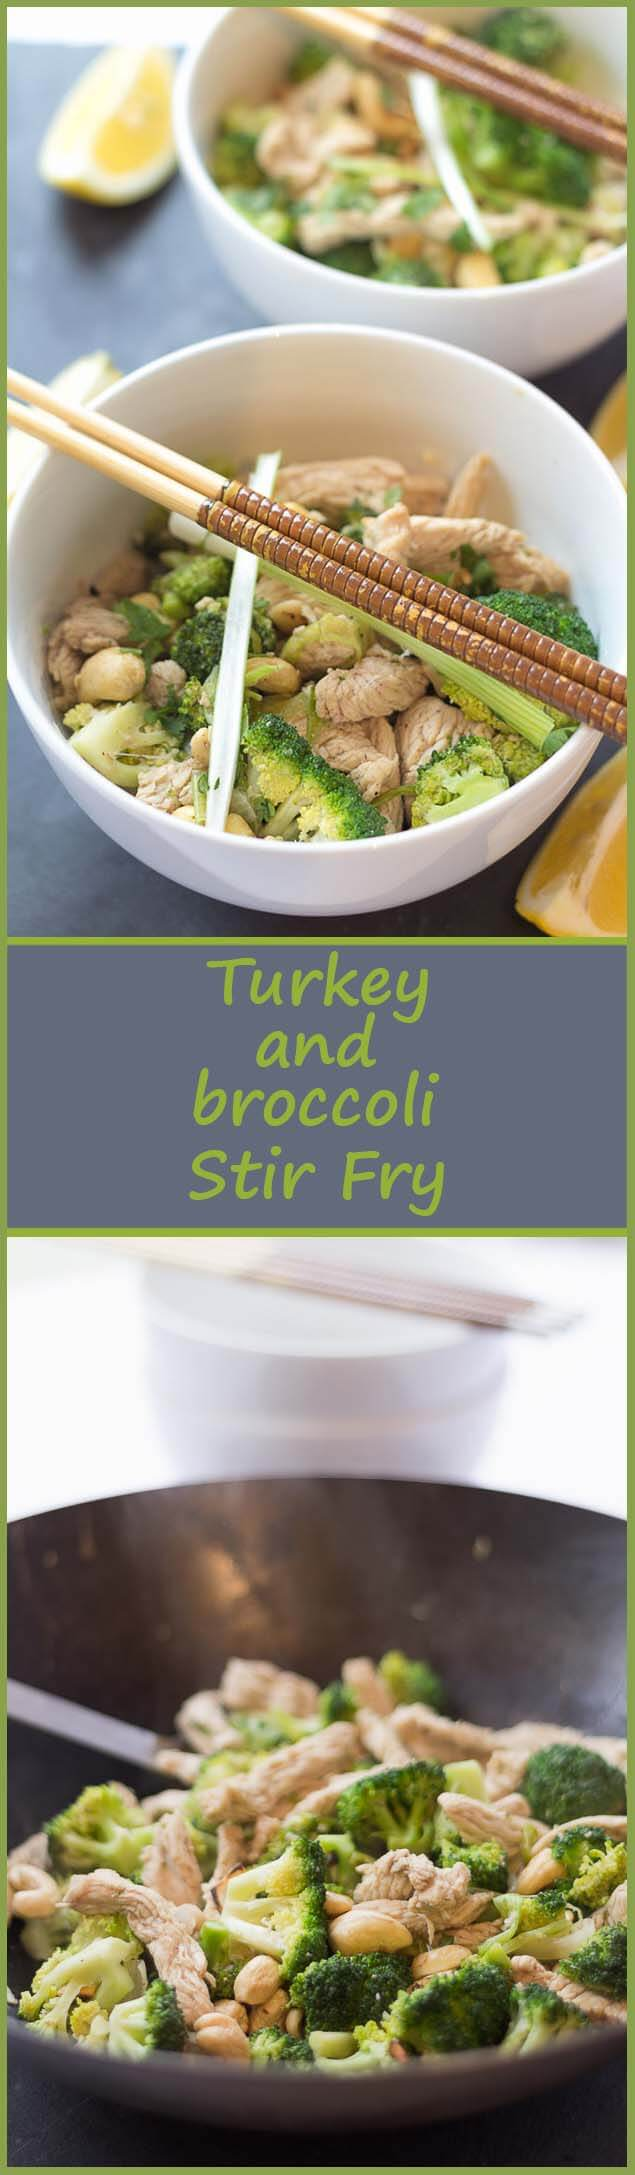 Tasty, quick to prepare and packed full of nutritional goodness. This cost conscious turkey and broccoli stir fry is ideal for those on limited budgets.